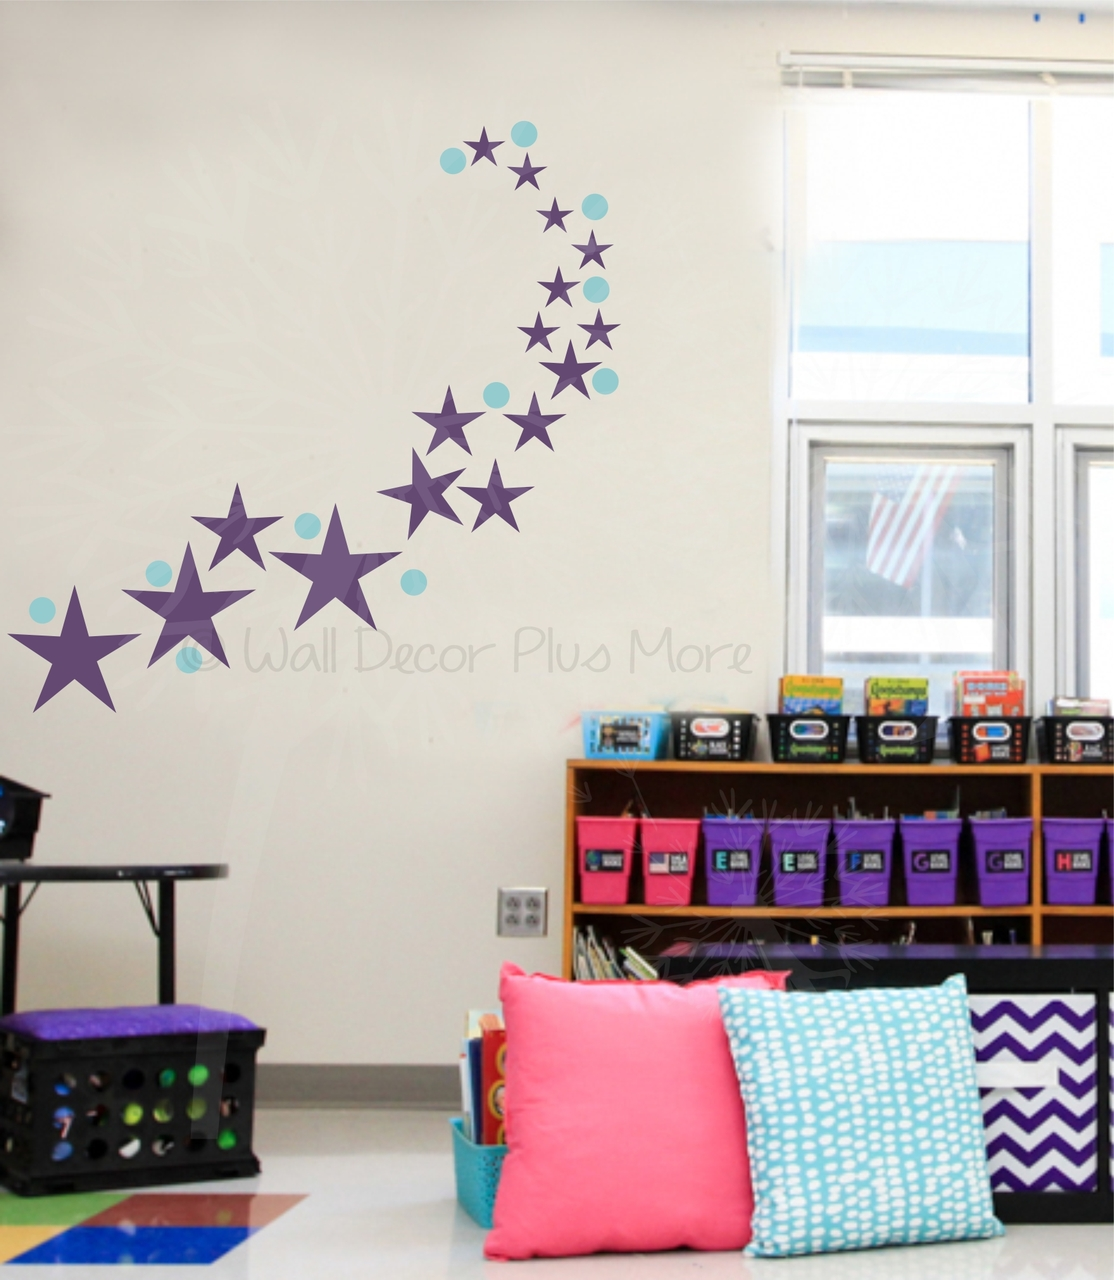 Stars Room Decor 3 Inch Polka Dots Vinyl Wall Stickers For Easy Kids Room Decor 28pc